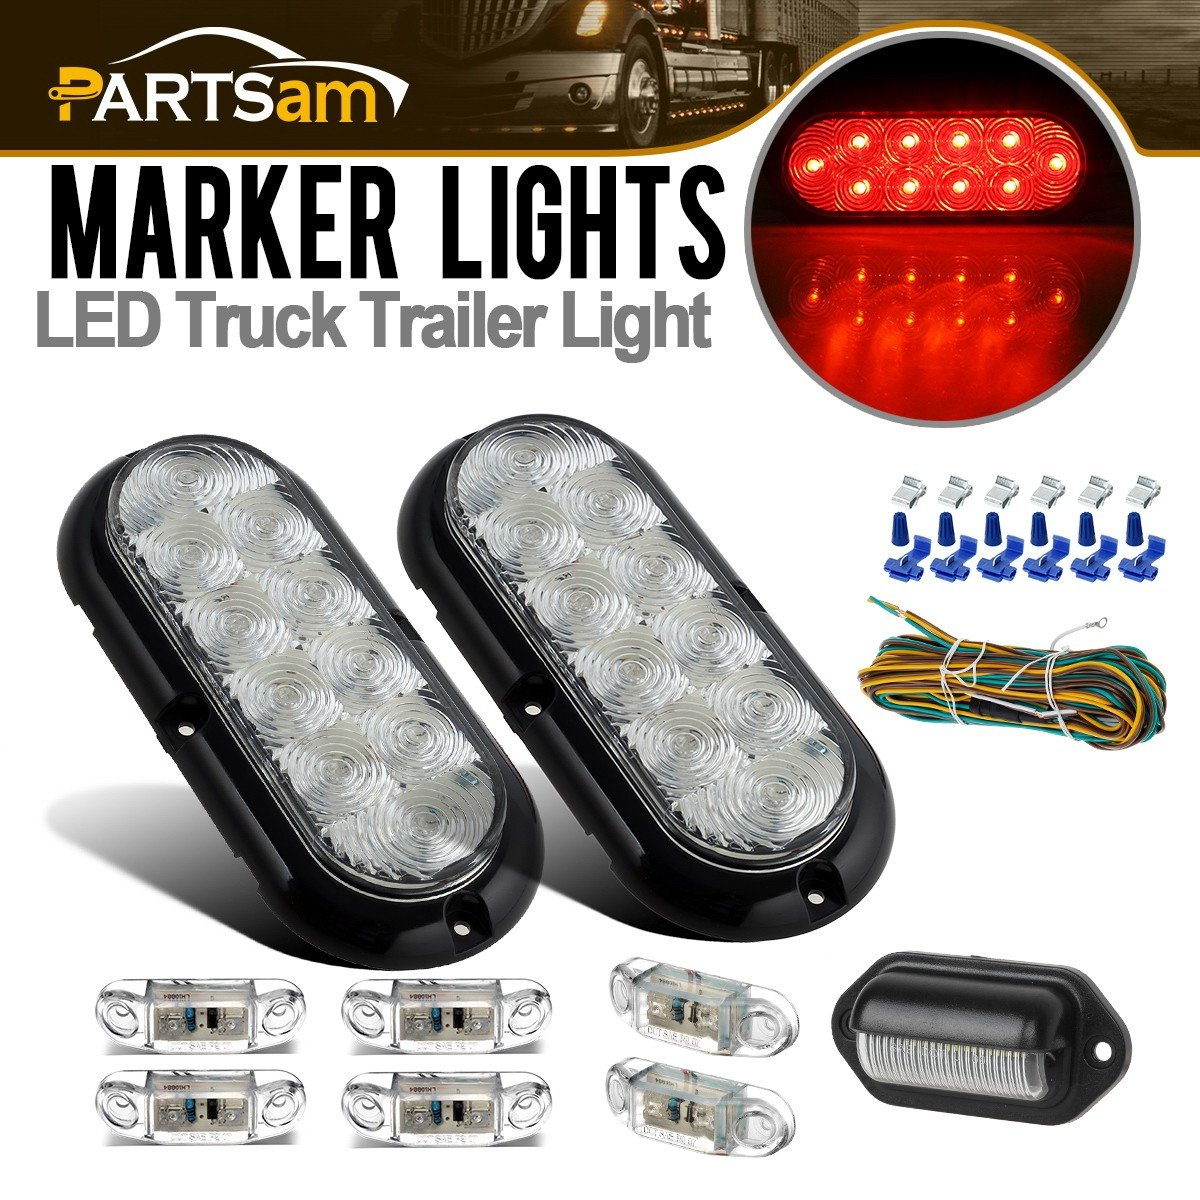 Partsam Submersible LED Trailer Light kit, 6'' Oval Clear/Red 10LED Stop Turn Tail Brake Lights, 6Pcs 2.57'' Mini Oval Led Marker Clearance Lights, License Plate Lamp 6-3528-LED, 4-way Wire Harness by Partsam